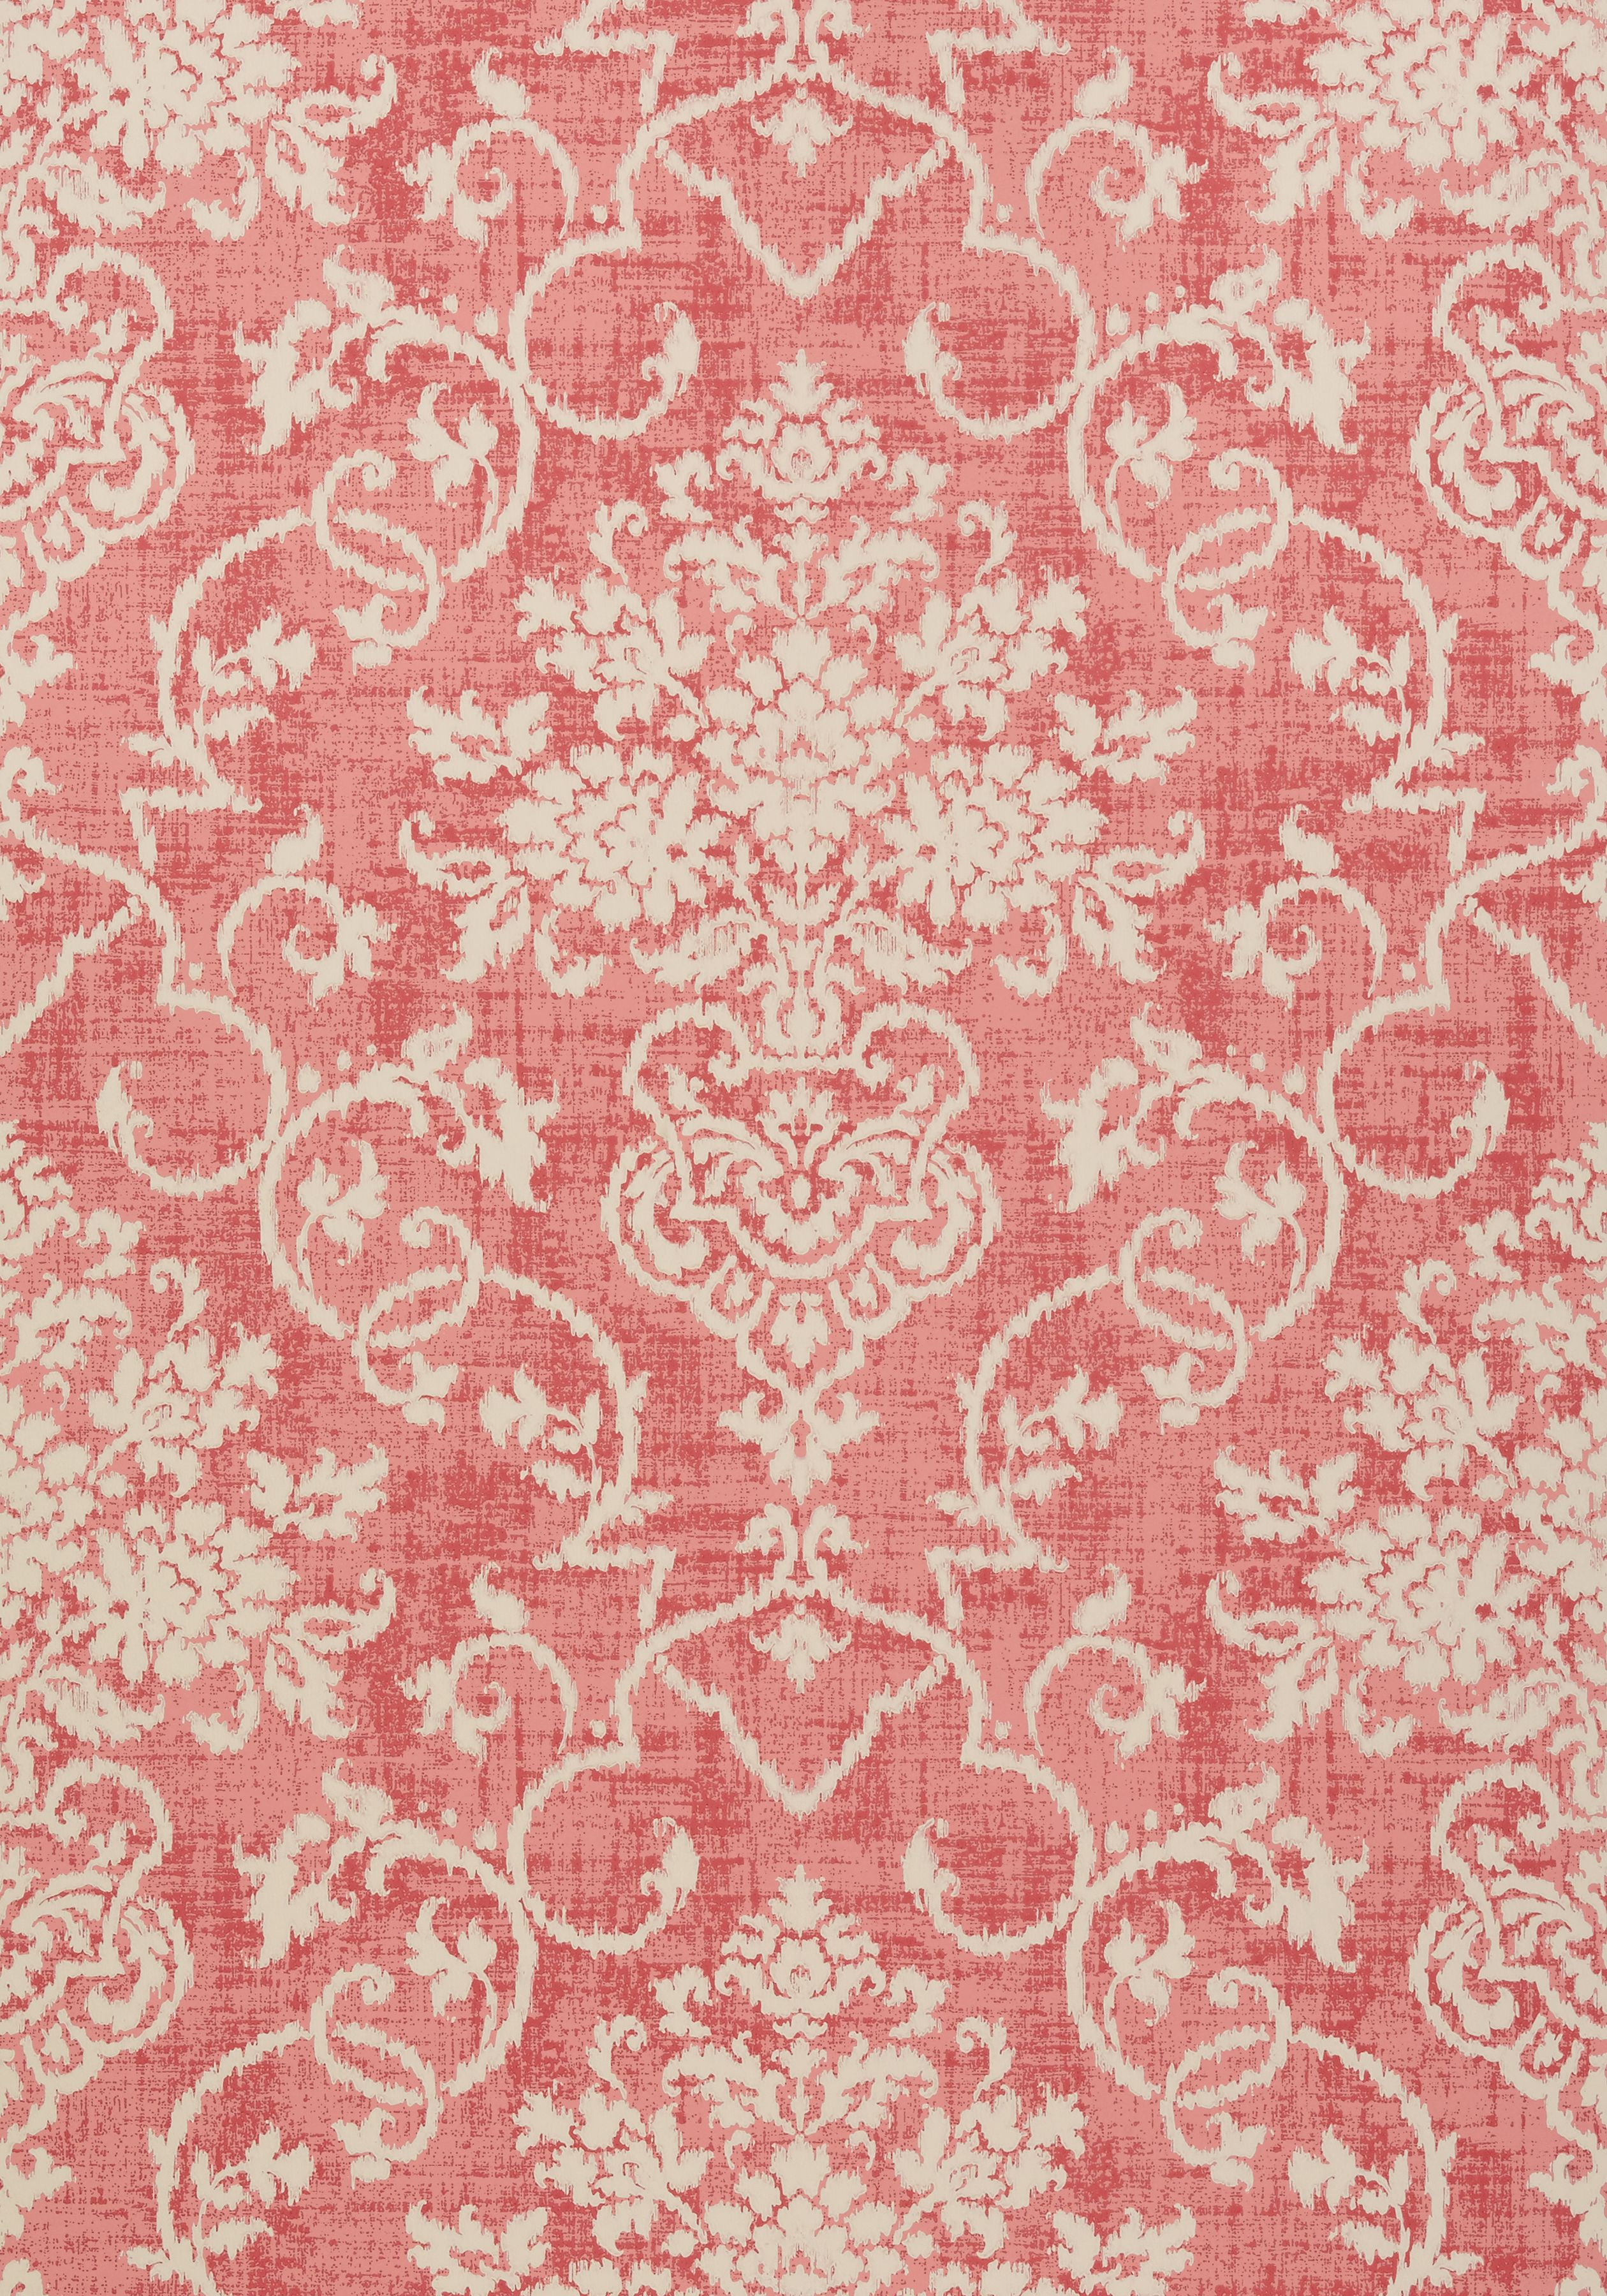 ALICIA, Raspberry, T89125, Collection Damask Resource 4